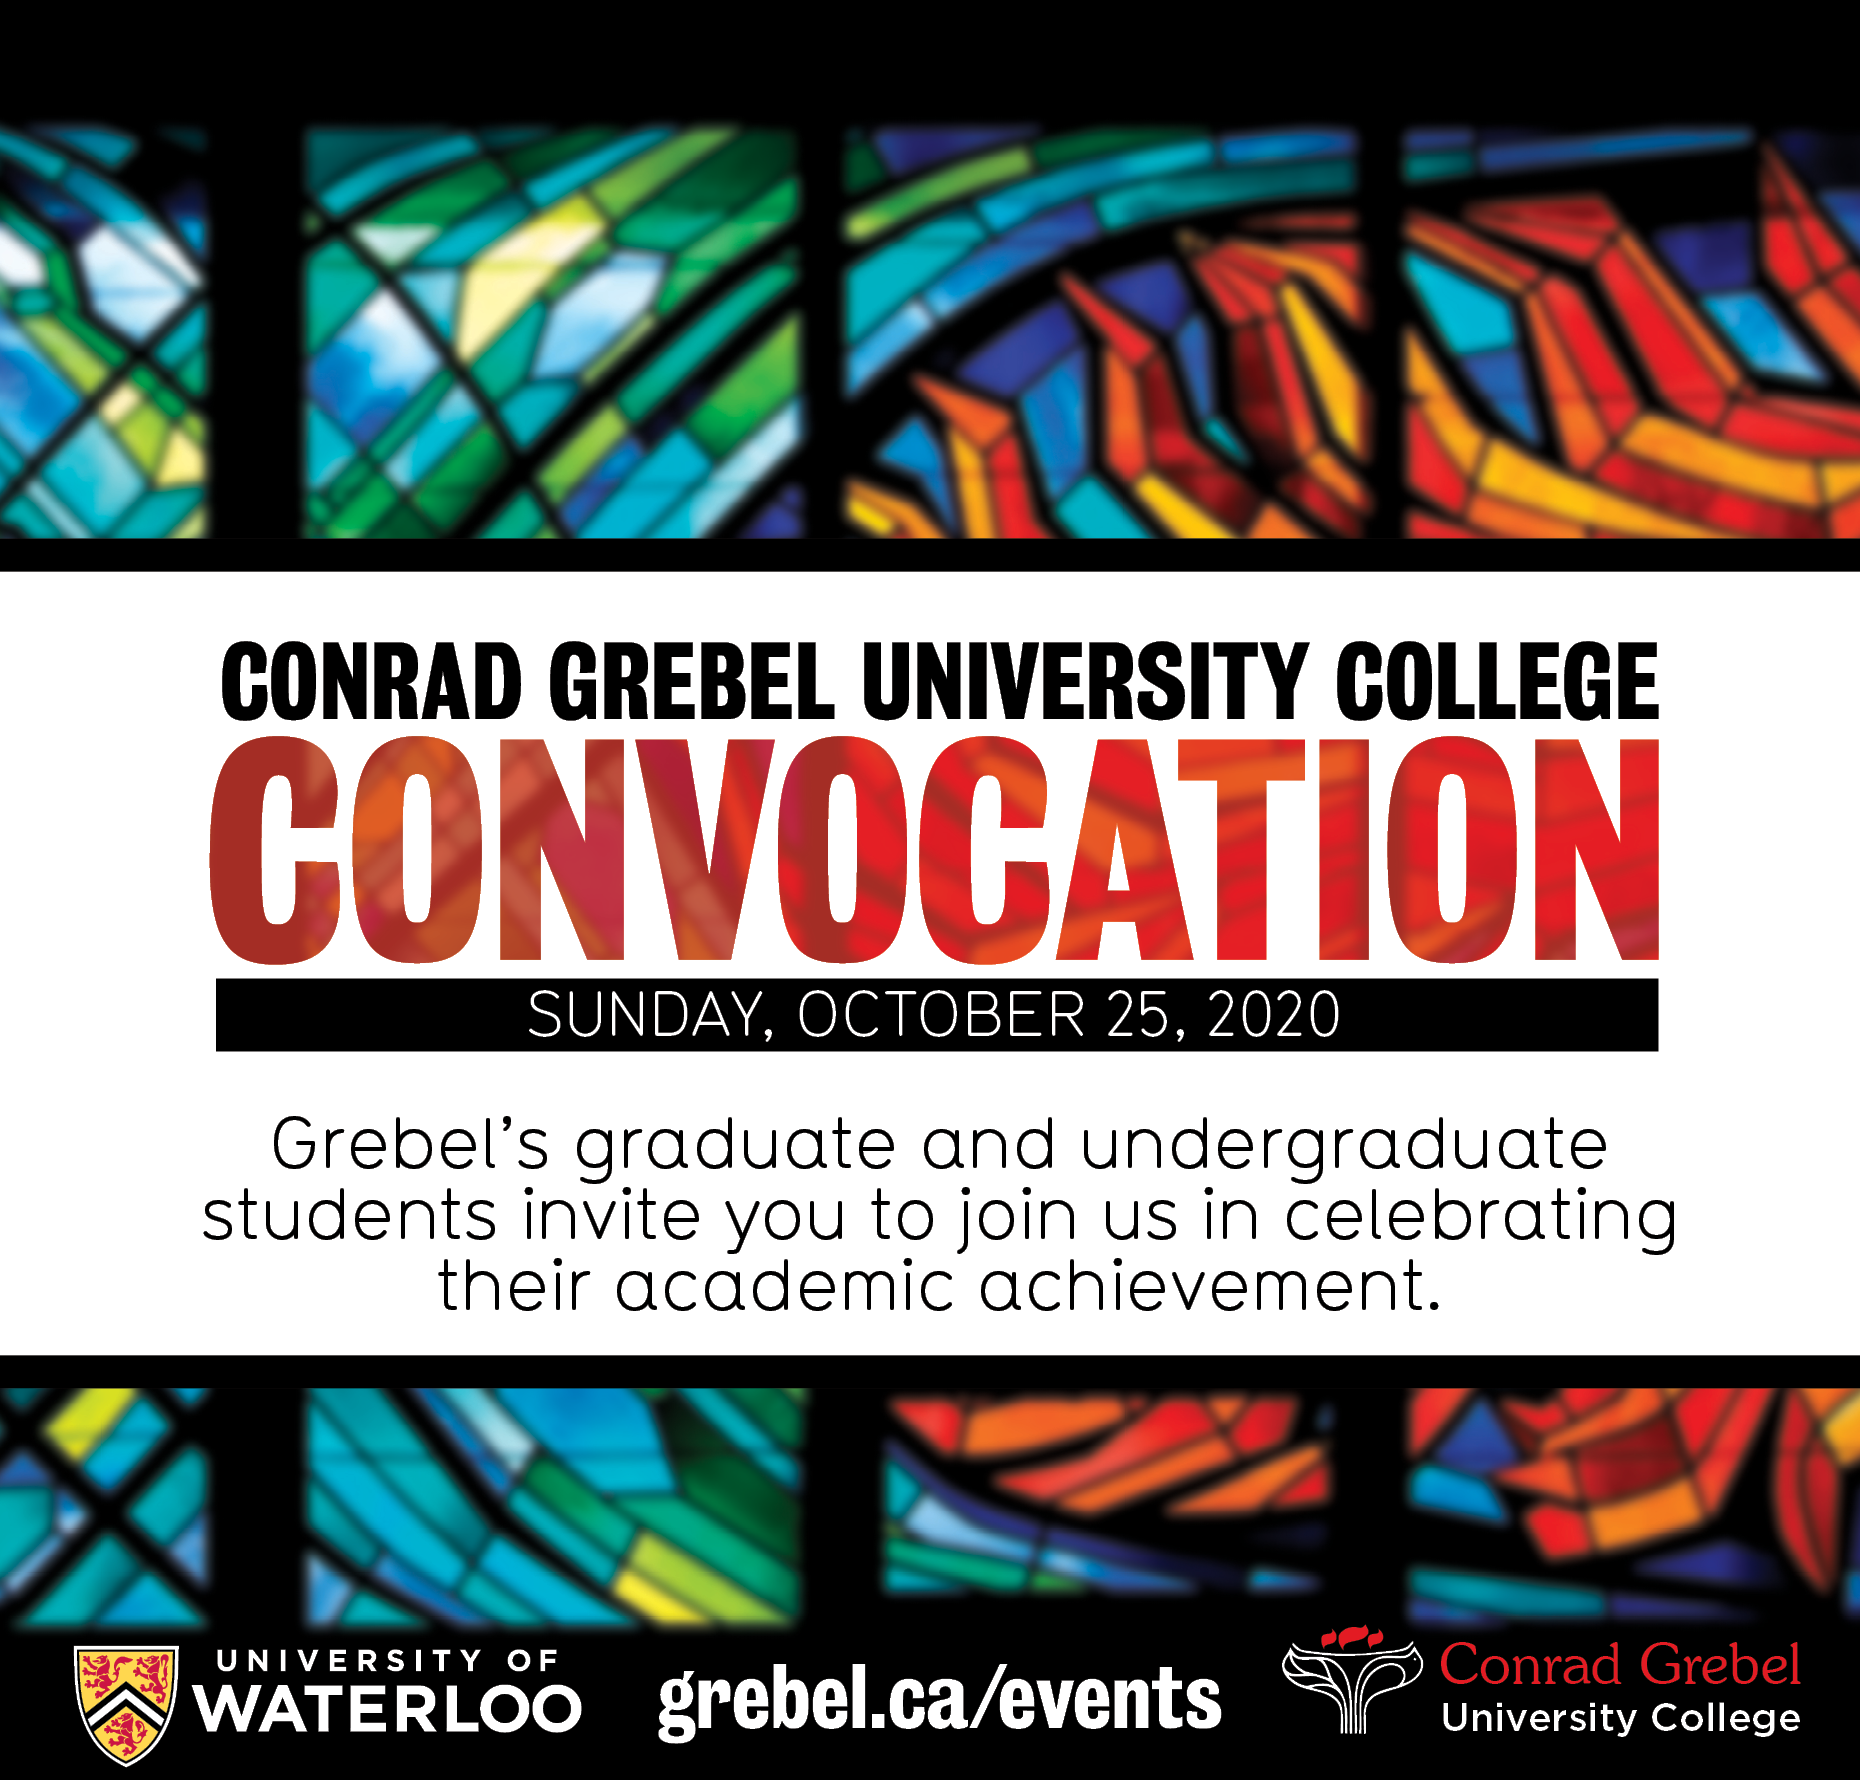 Convocation Invitation Image